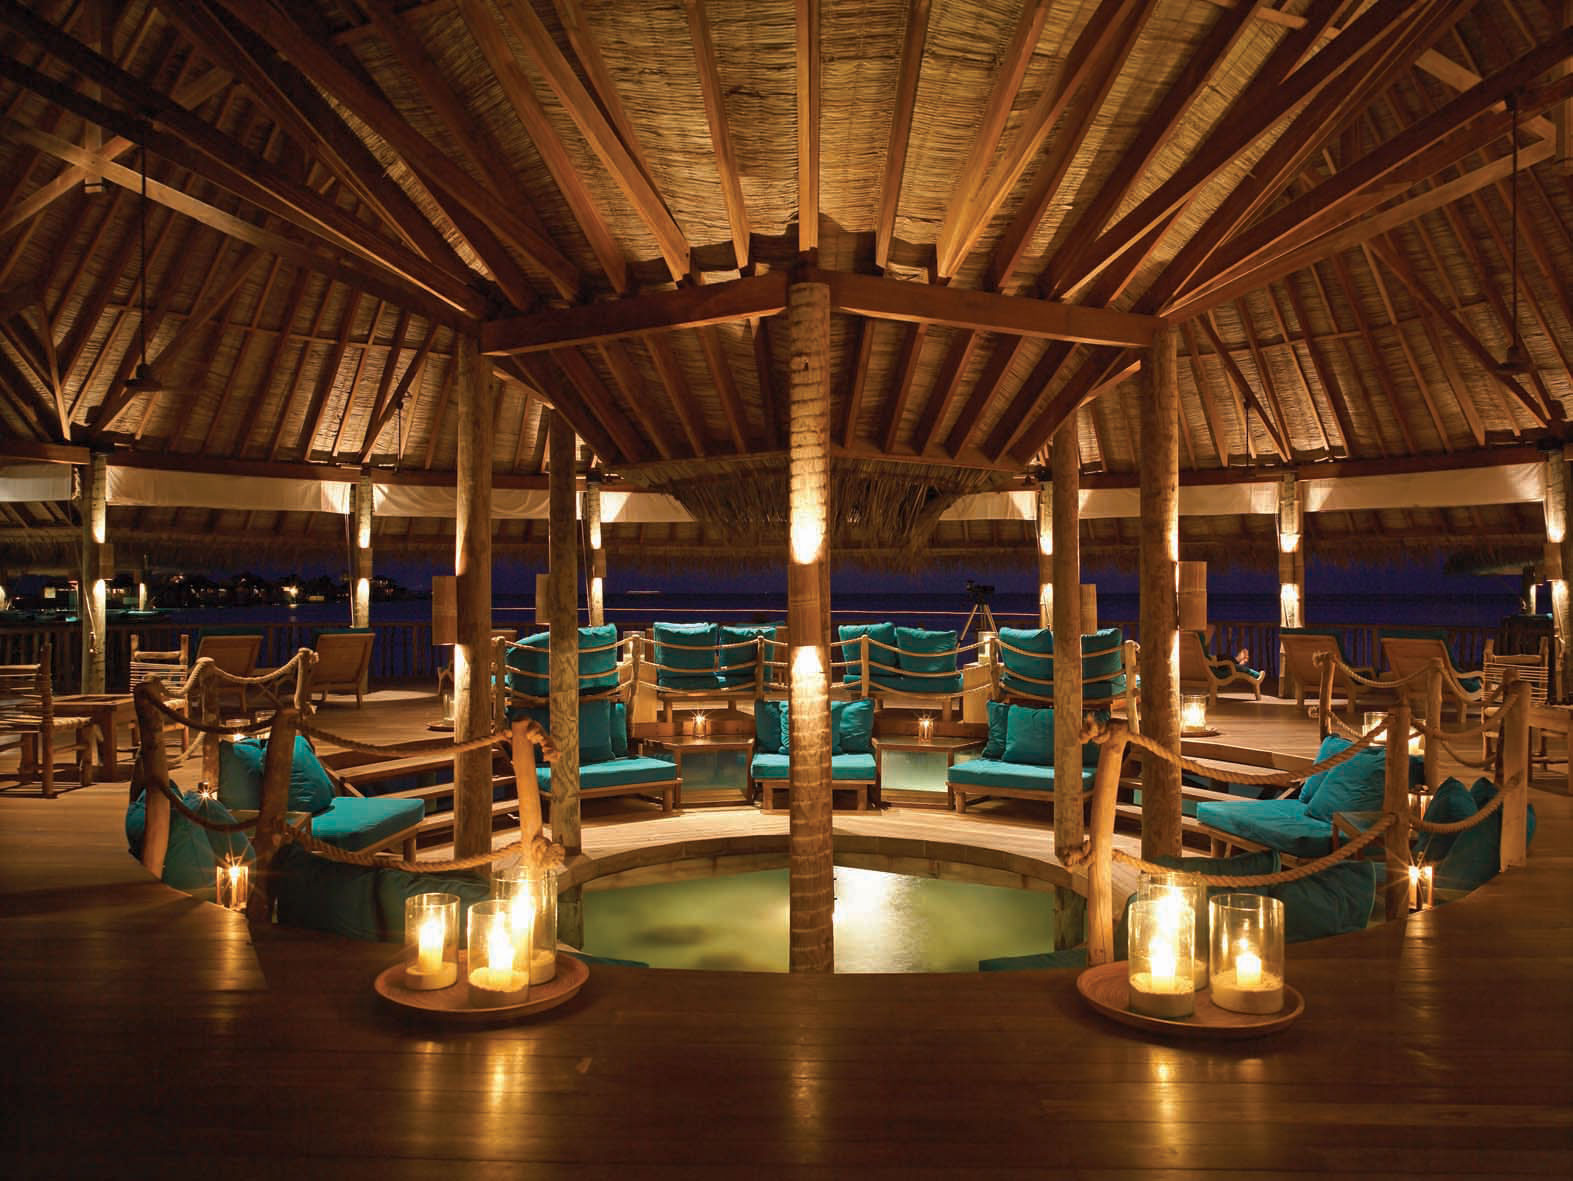 Gili Lankanfushi A Paradisaical Resort In Maldives